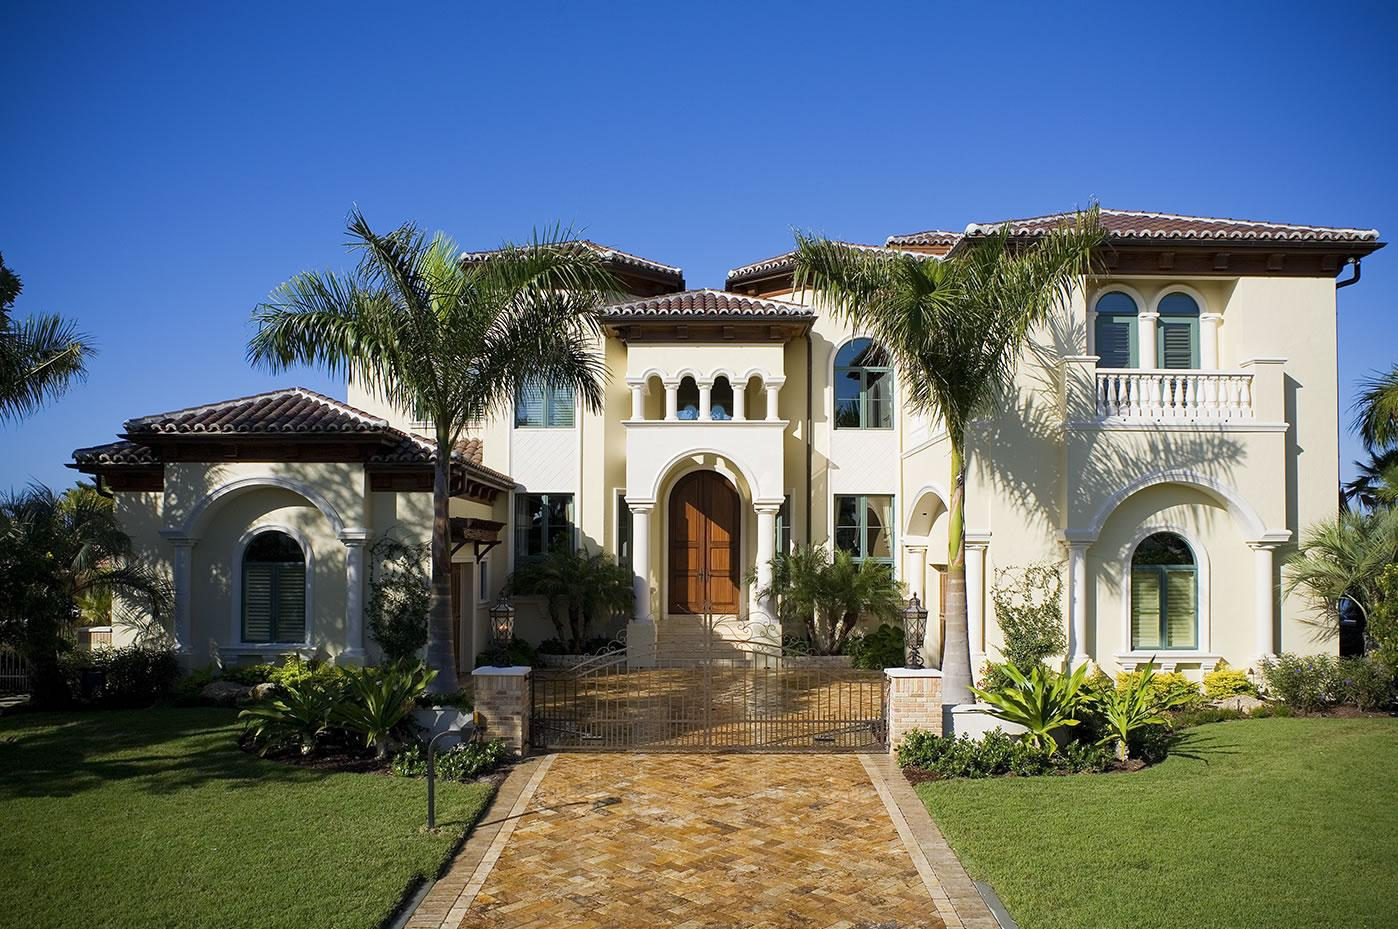 Homes for Sale in PEMBROKE PINES, FL